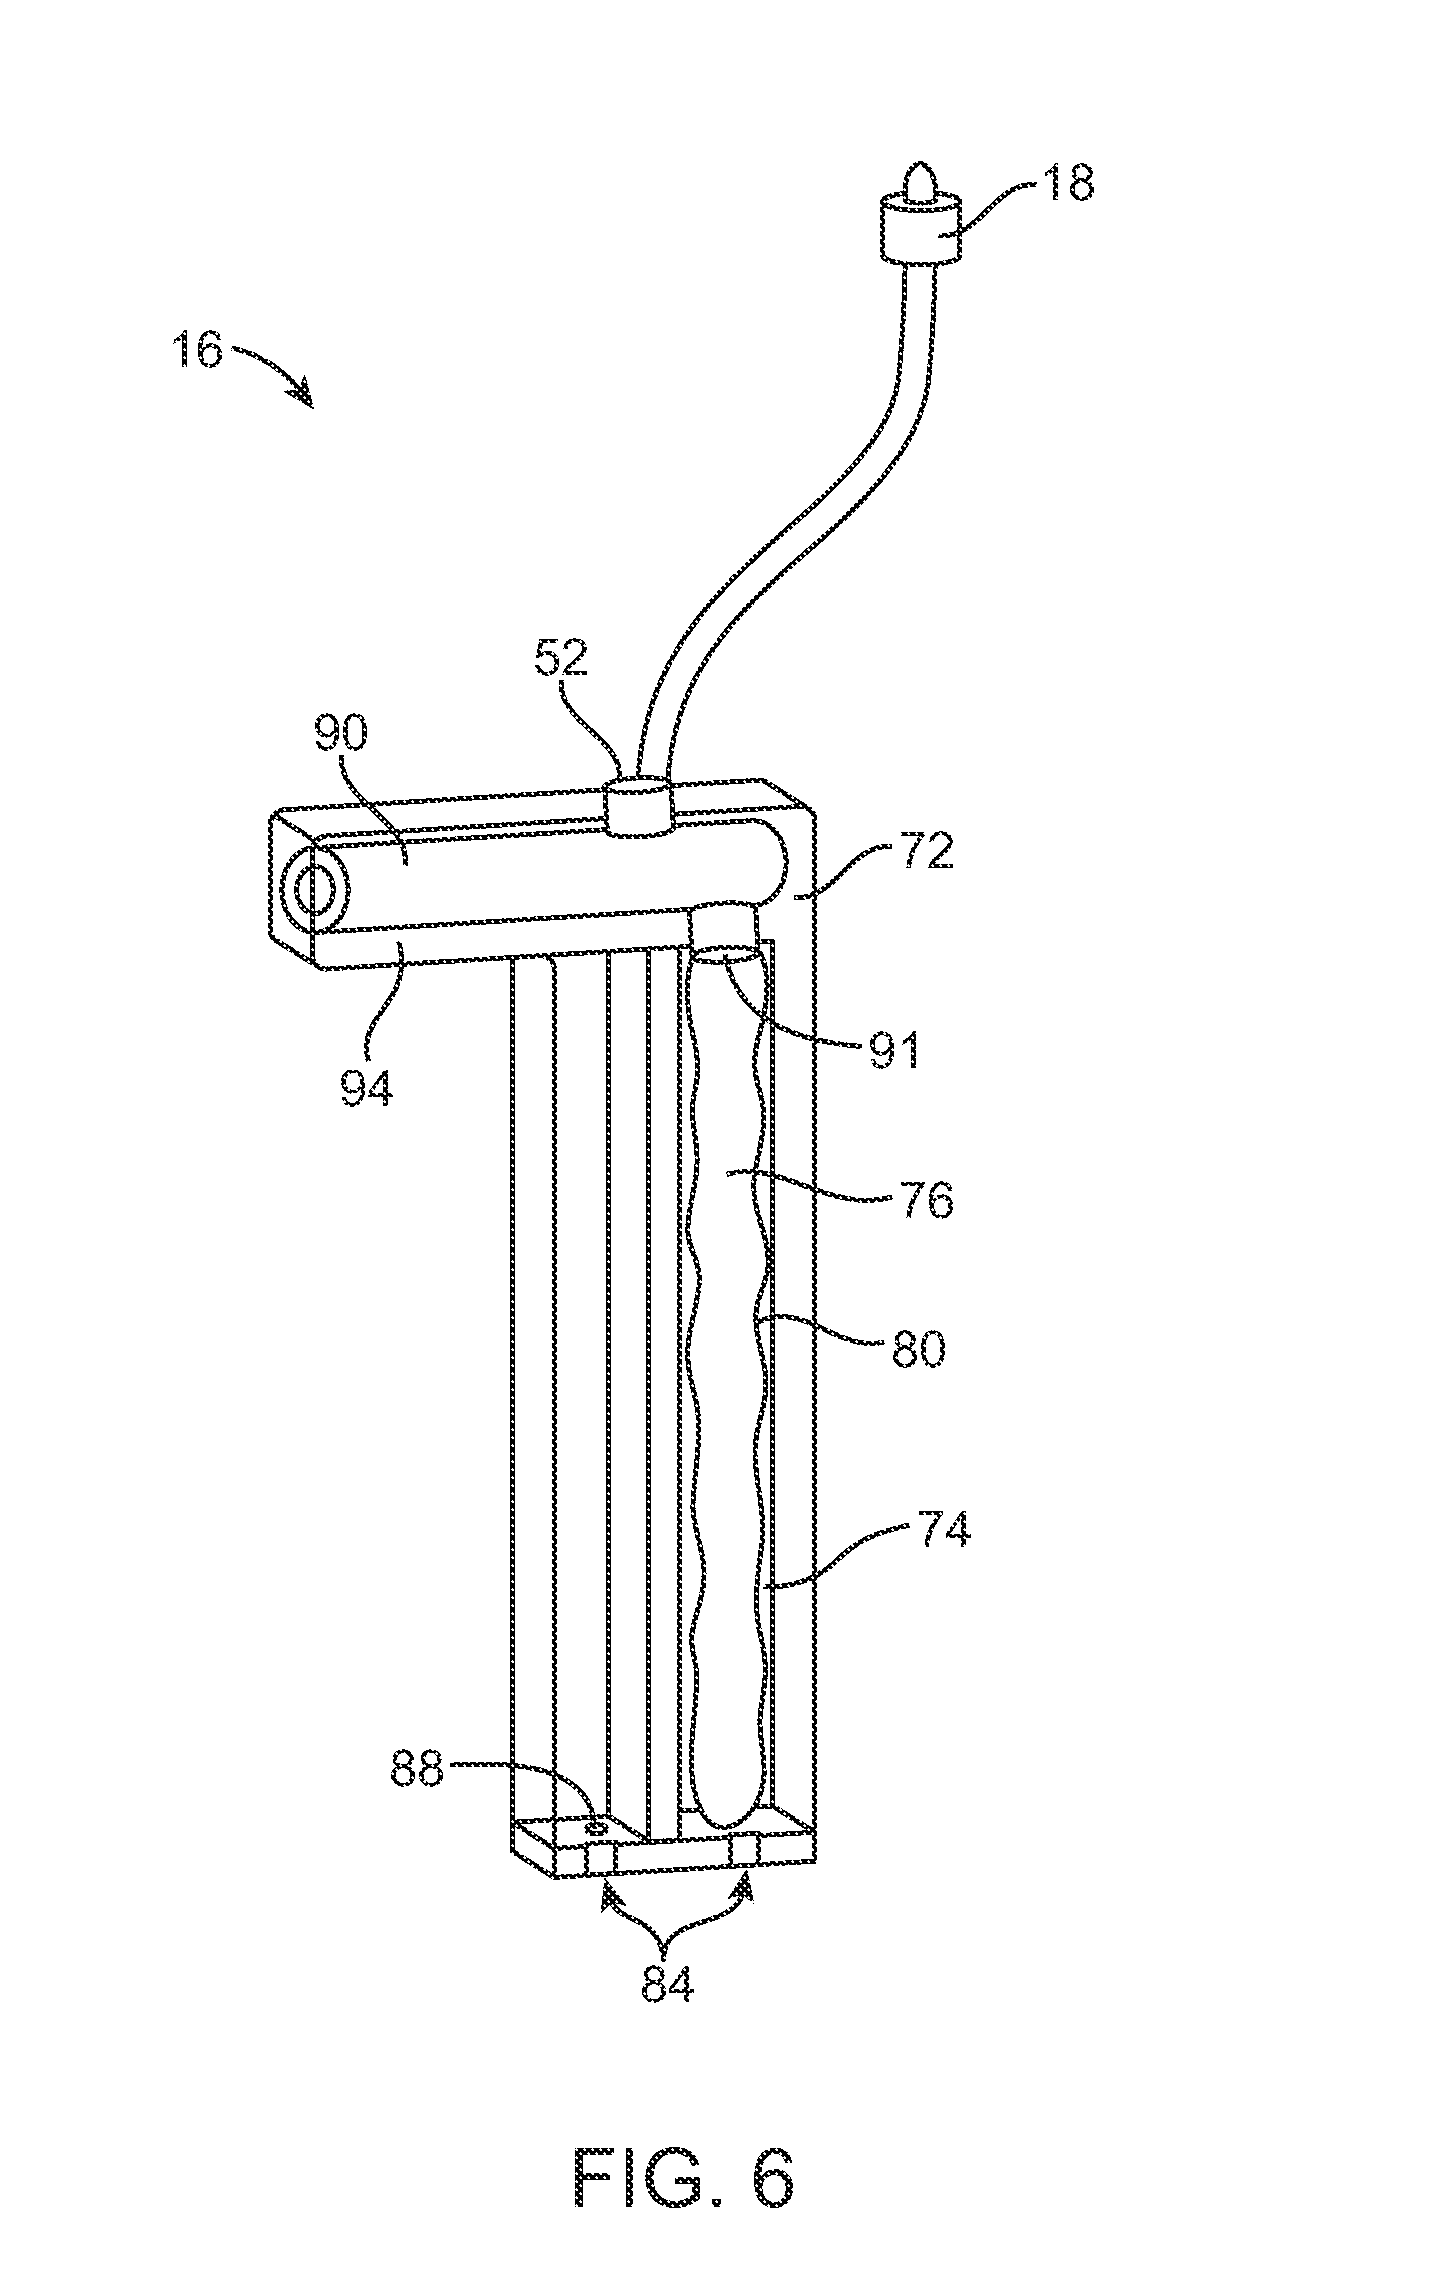 Us8287495b2 Infusion Pump System With Disposable Cartridge Having 600 X 540 45 Kb Jpeg Simple Flashing Led Circuit Pressure Venting And Feedback Google Patents